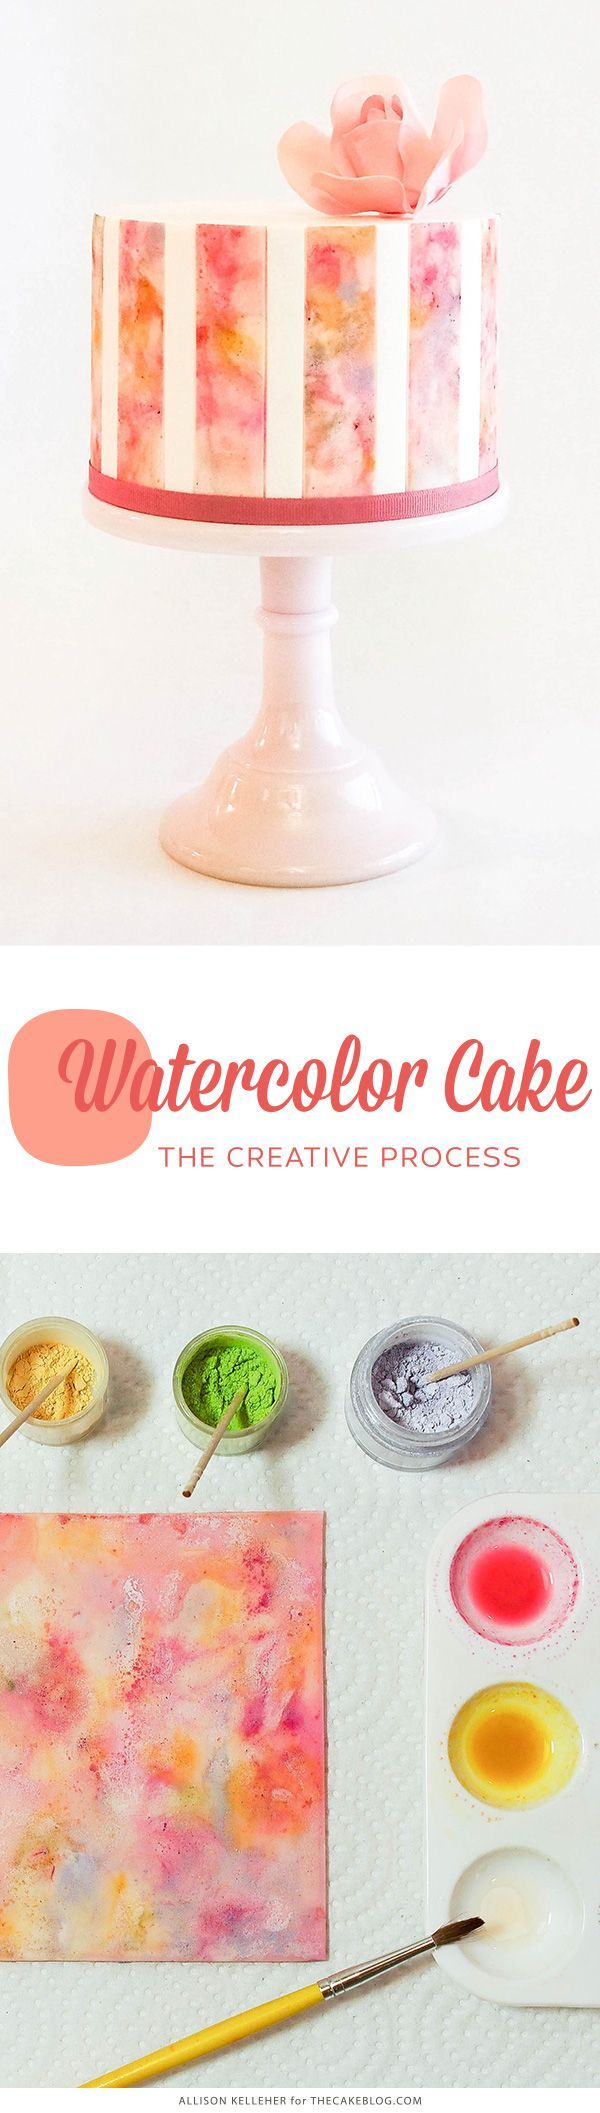 How to make a Watercolor Cake | by Allison Kelleher for TheCakeBlog.com